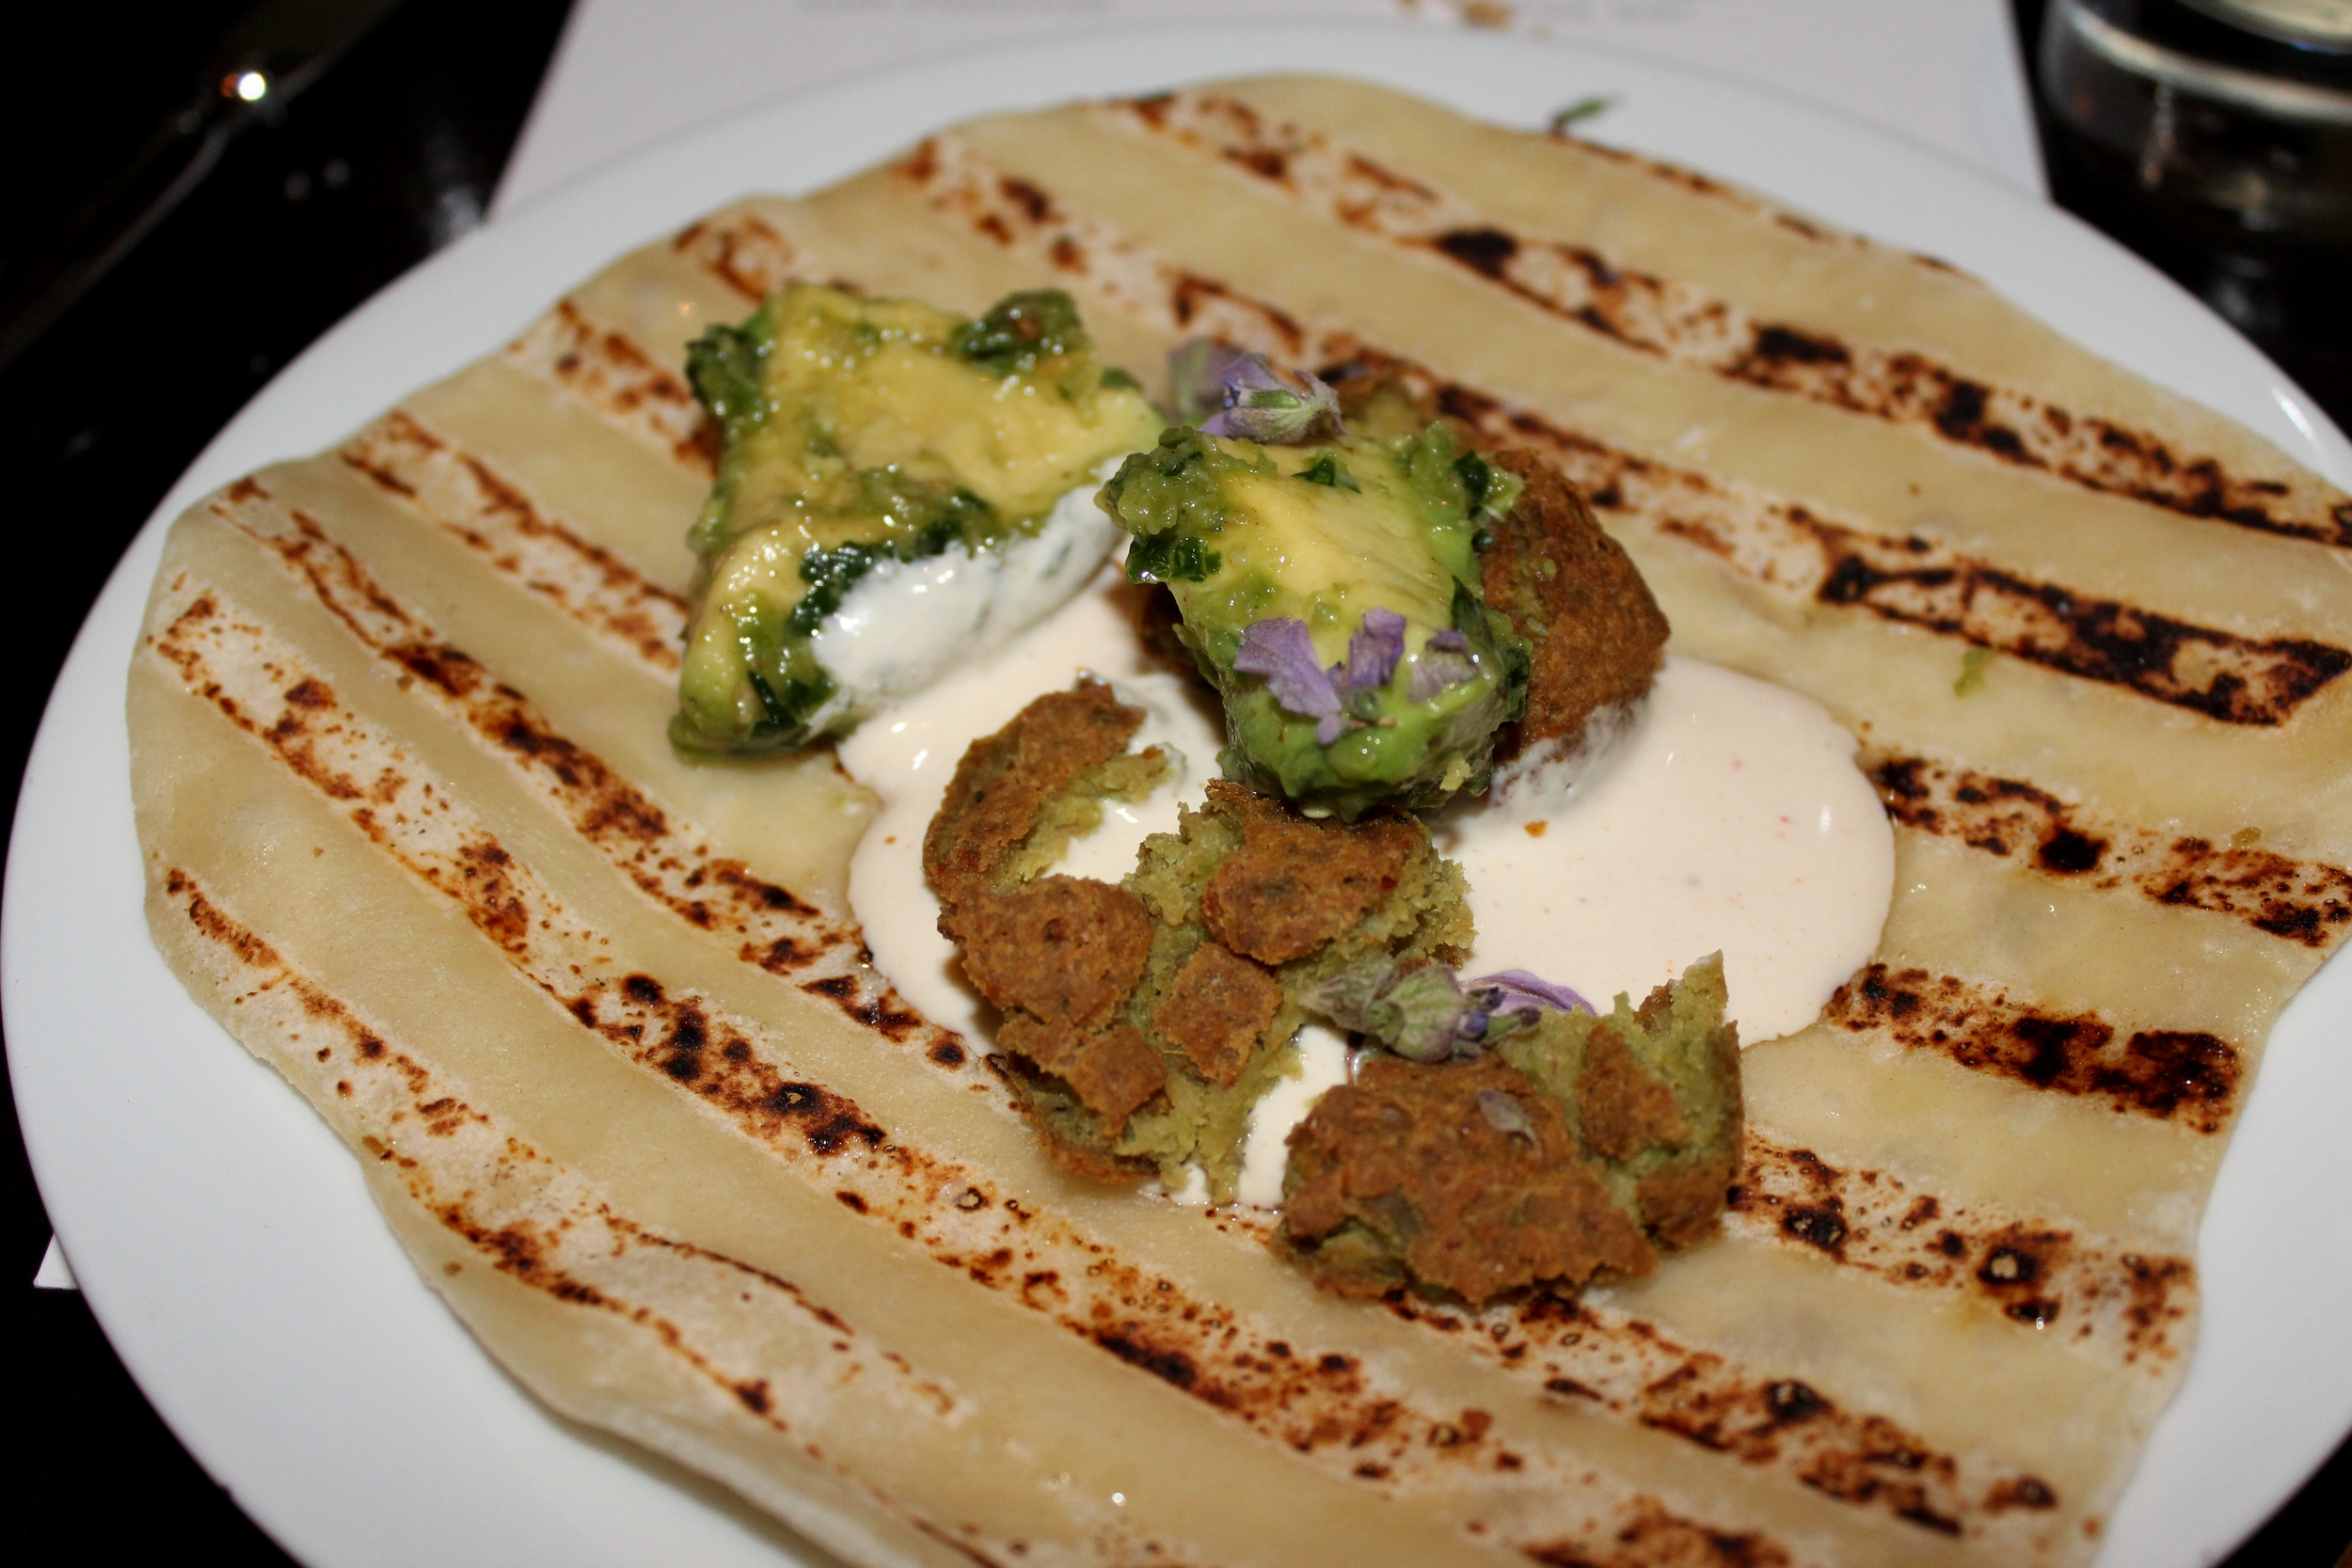 Fava bean falafel with labneh, avocado, and spicy Yemenite schug